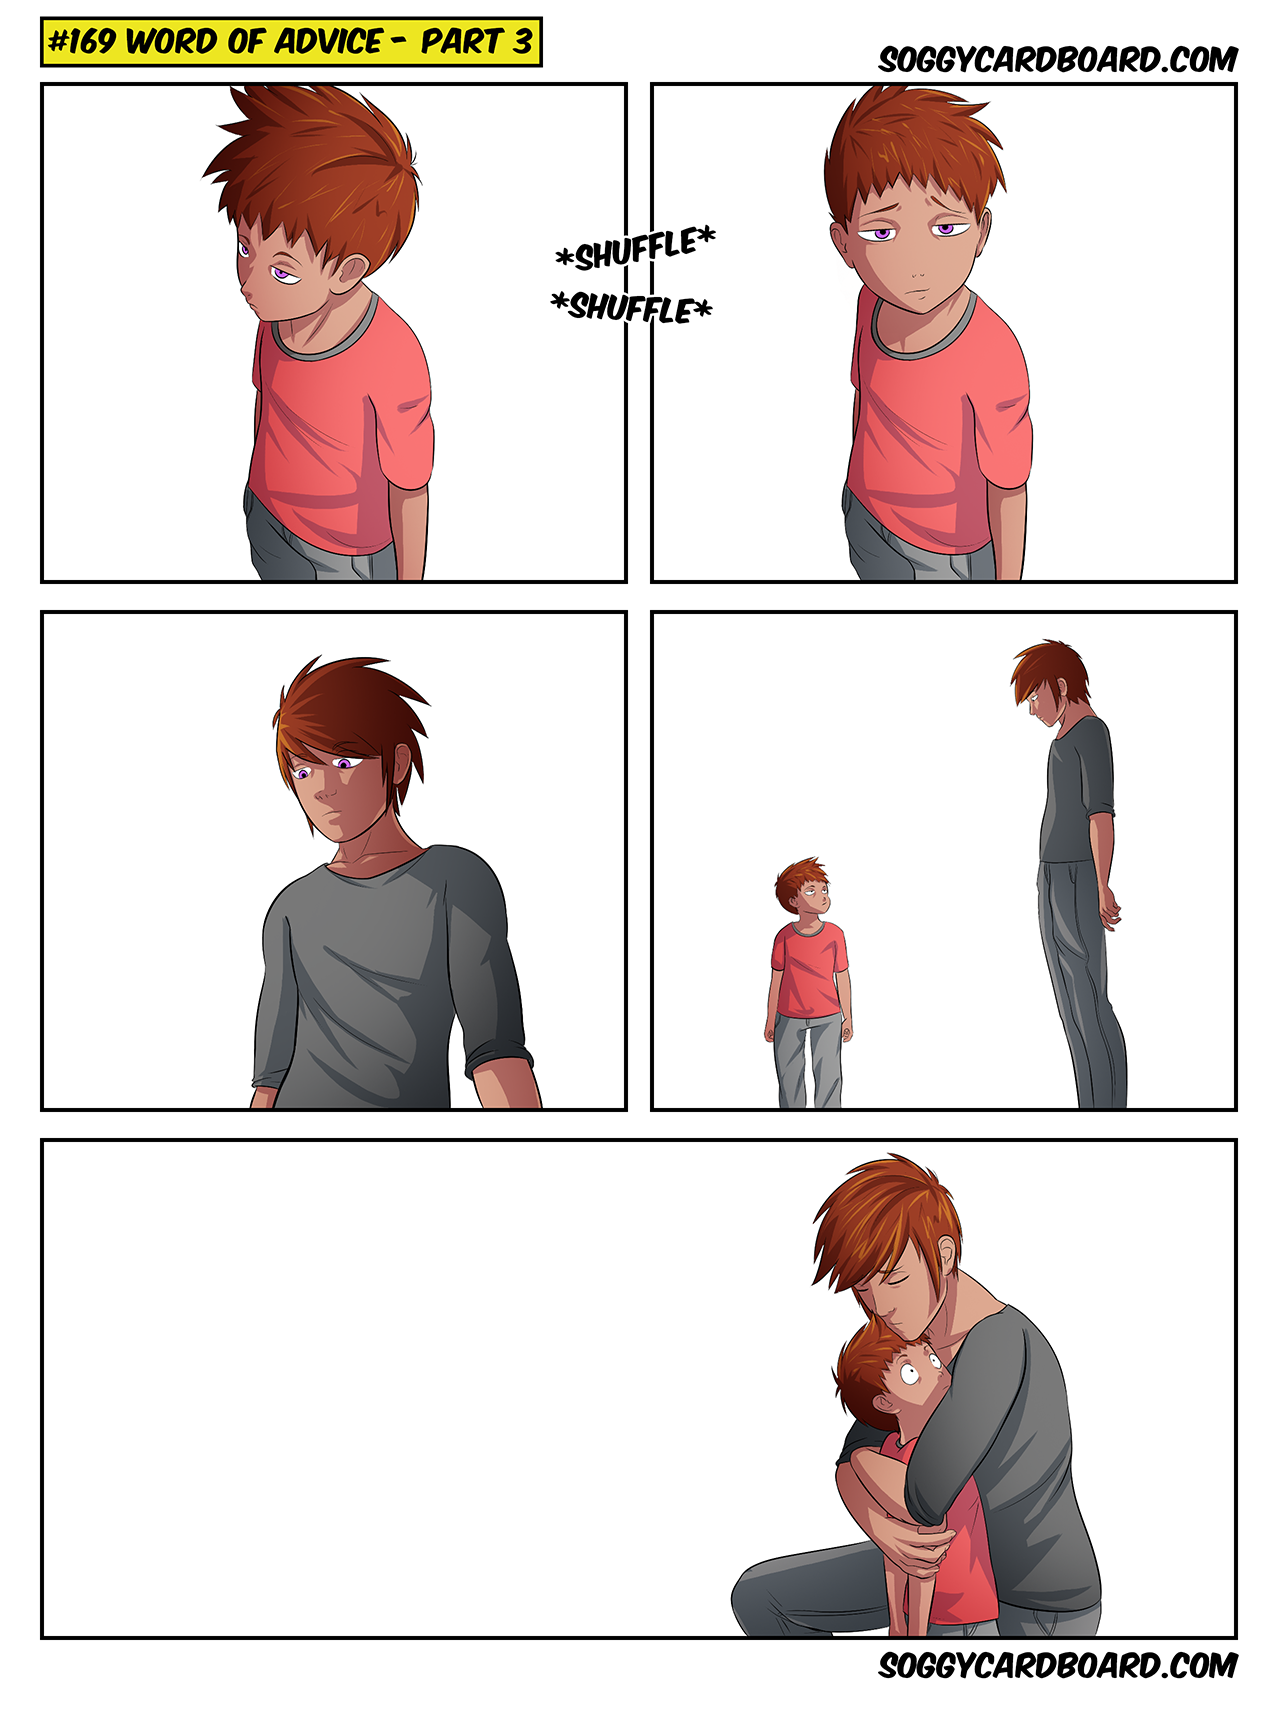 Why is this comic completely blank?